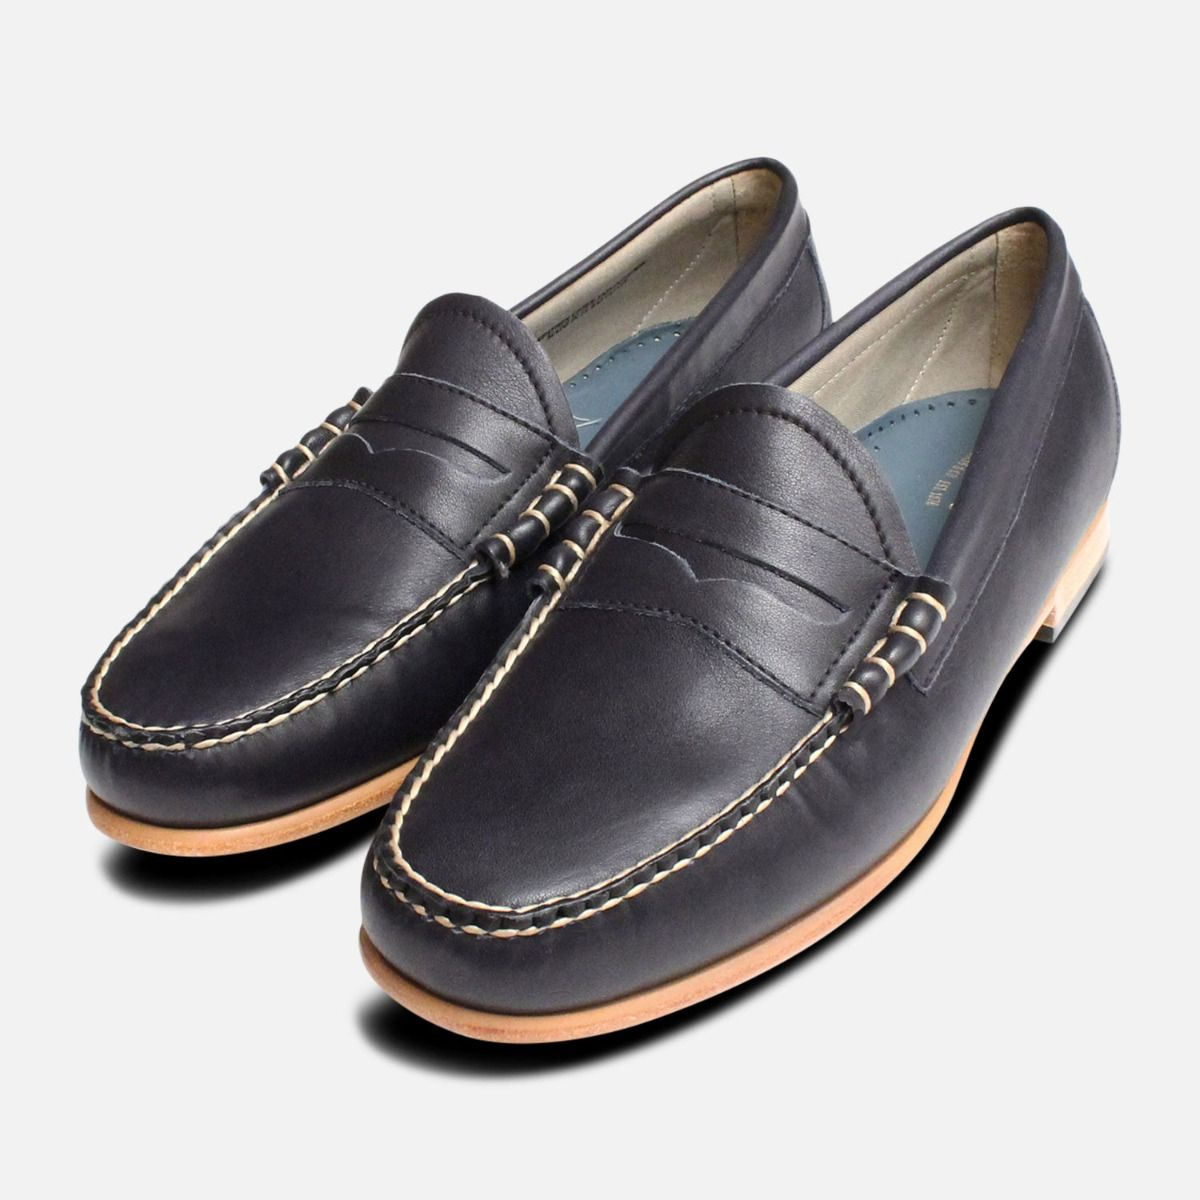 ab0576afb15 Navy Blue Bass Weejun Mens Loafers Leather Sole